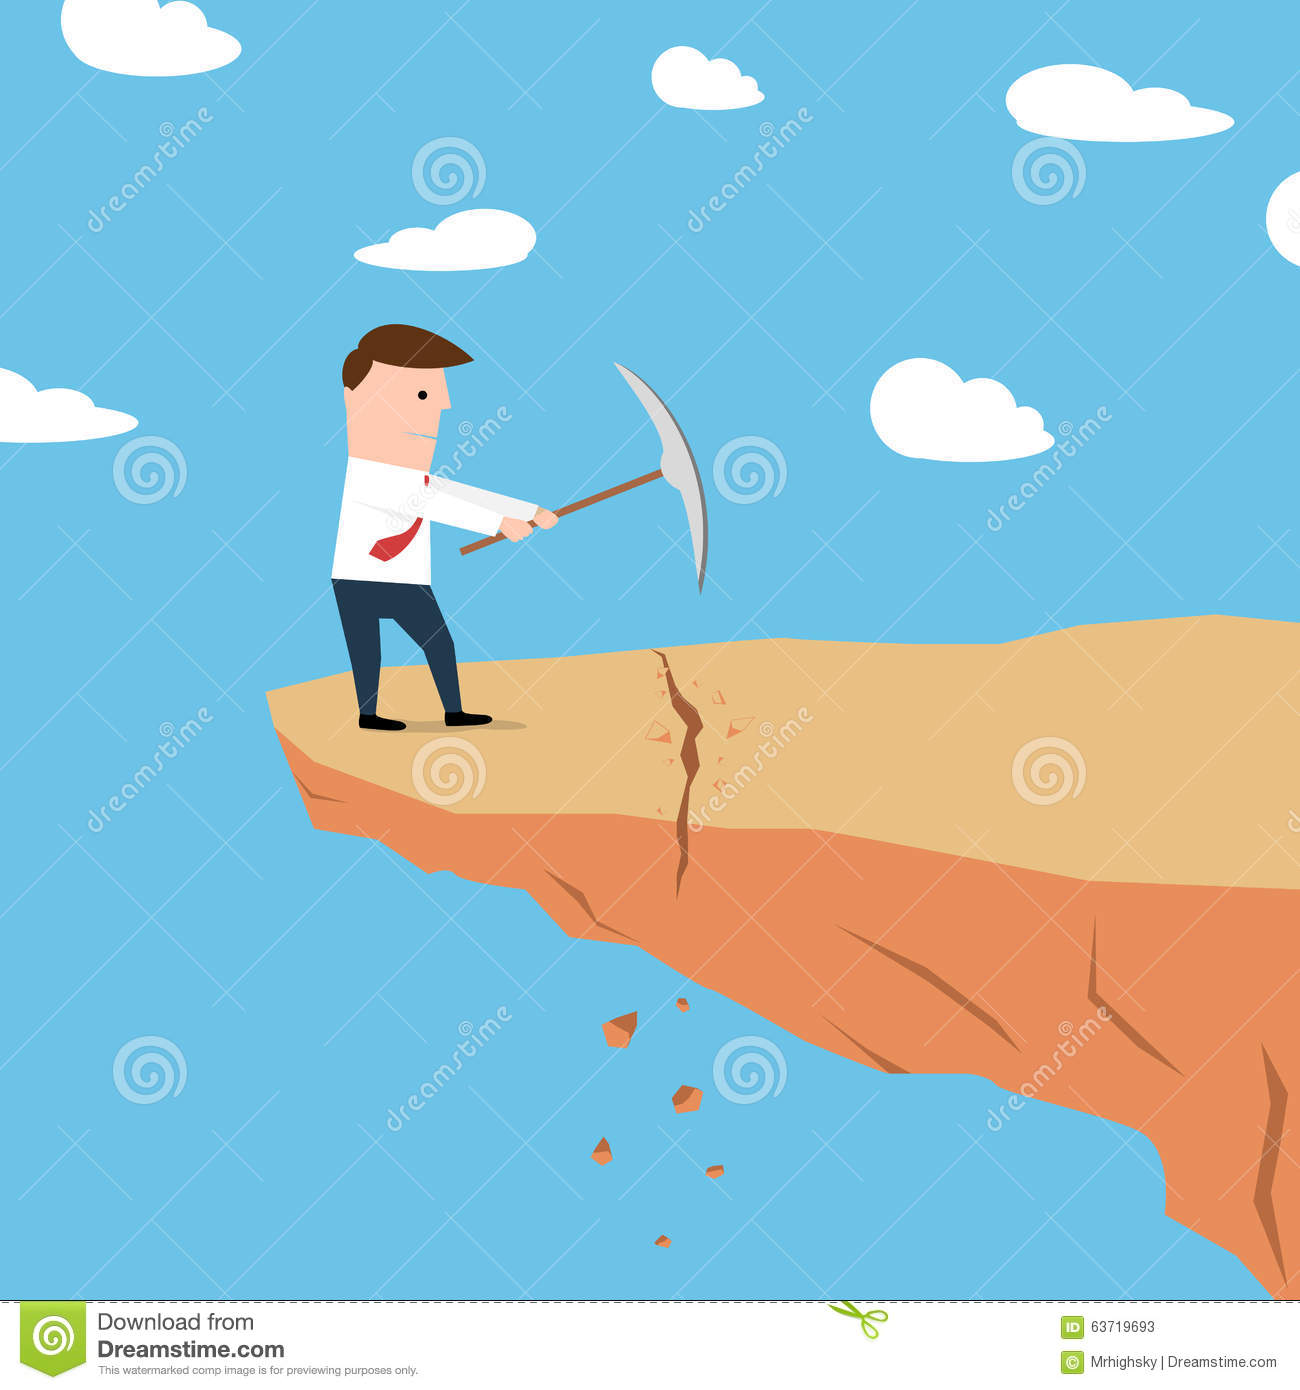 Cliff edge cartoons illustrations vector stock images for Digging ground dream meaning